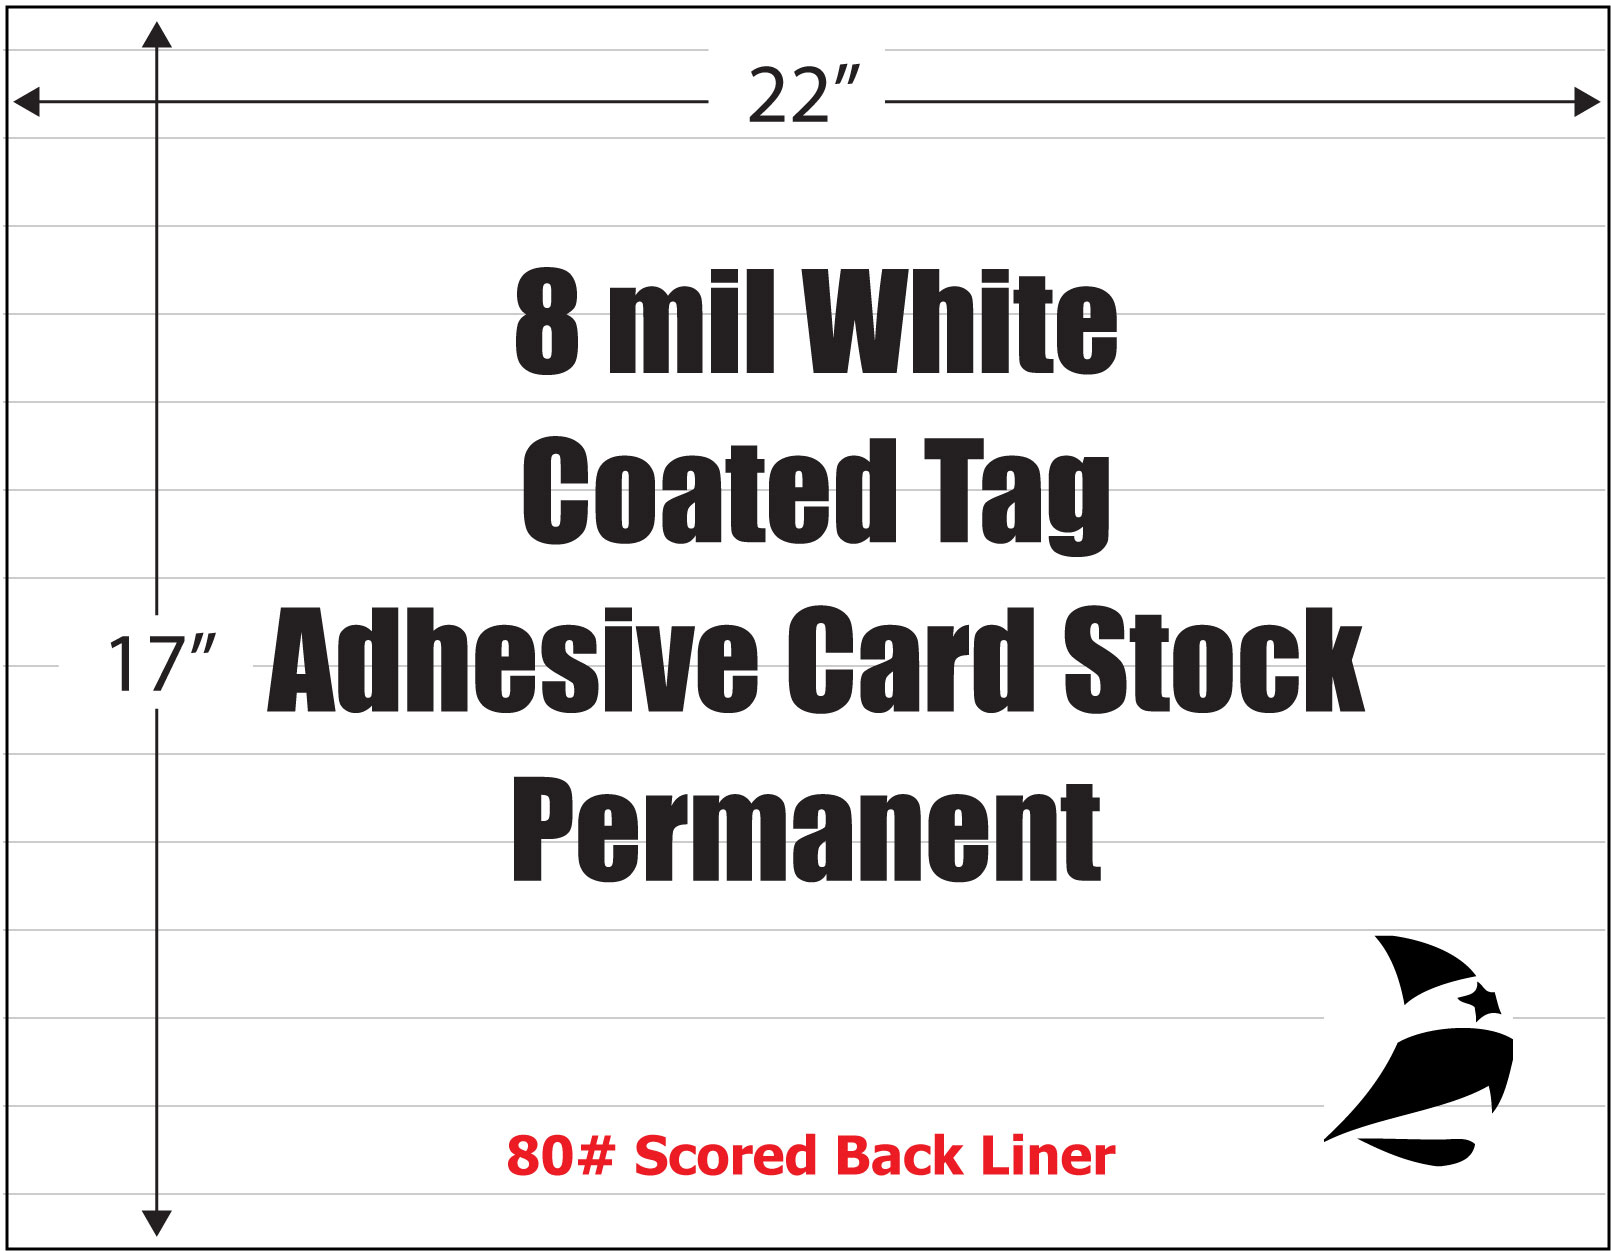 Coated Tag 8 Mil White Adhesive Card Stock Permanent